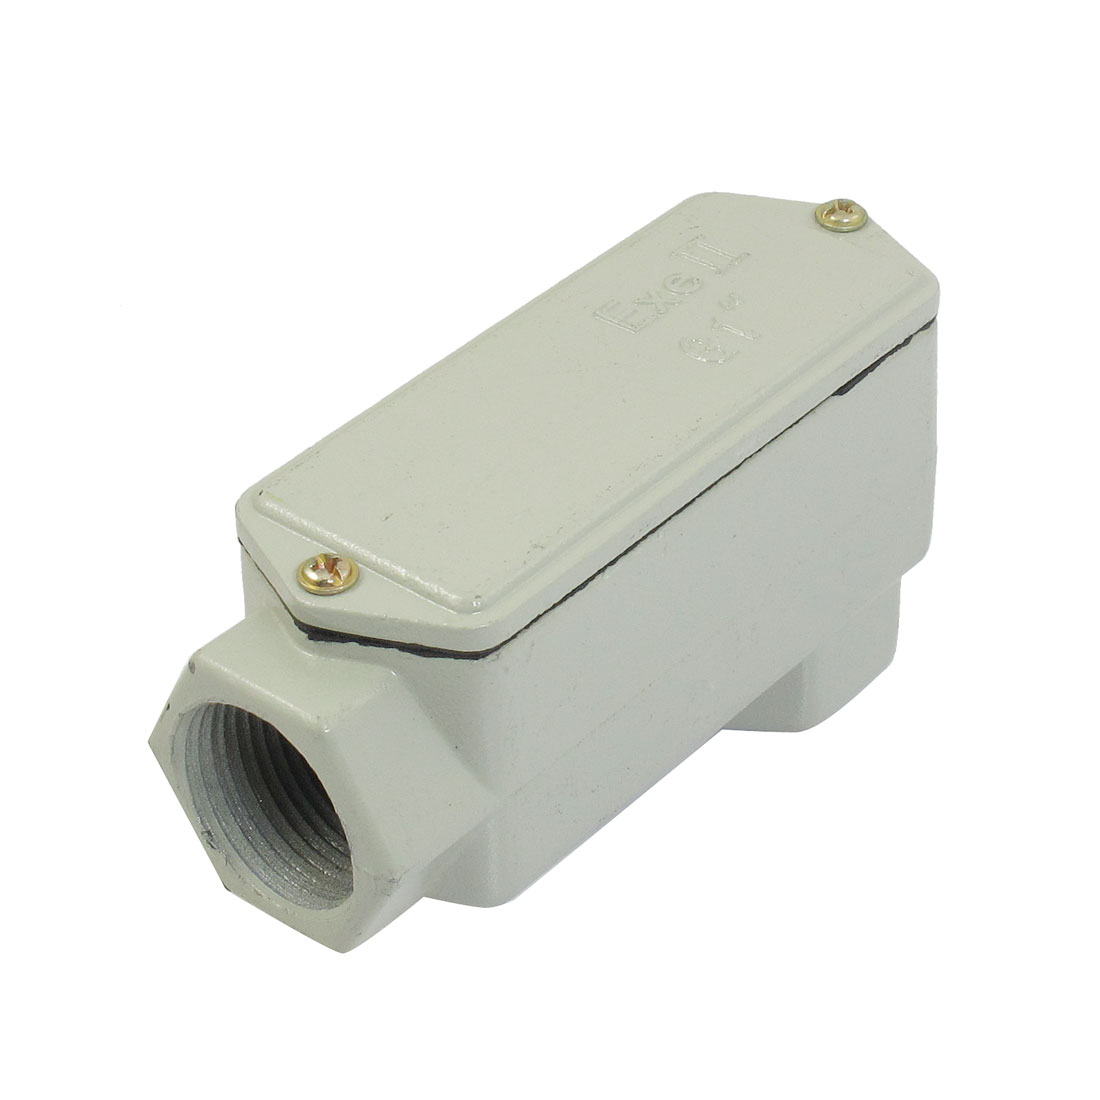 Metal-Right-Angle-2-Hub-G1-Explosion-proof-Conduit-Outlet-Box-Jmguy